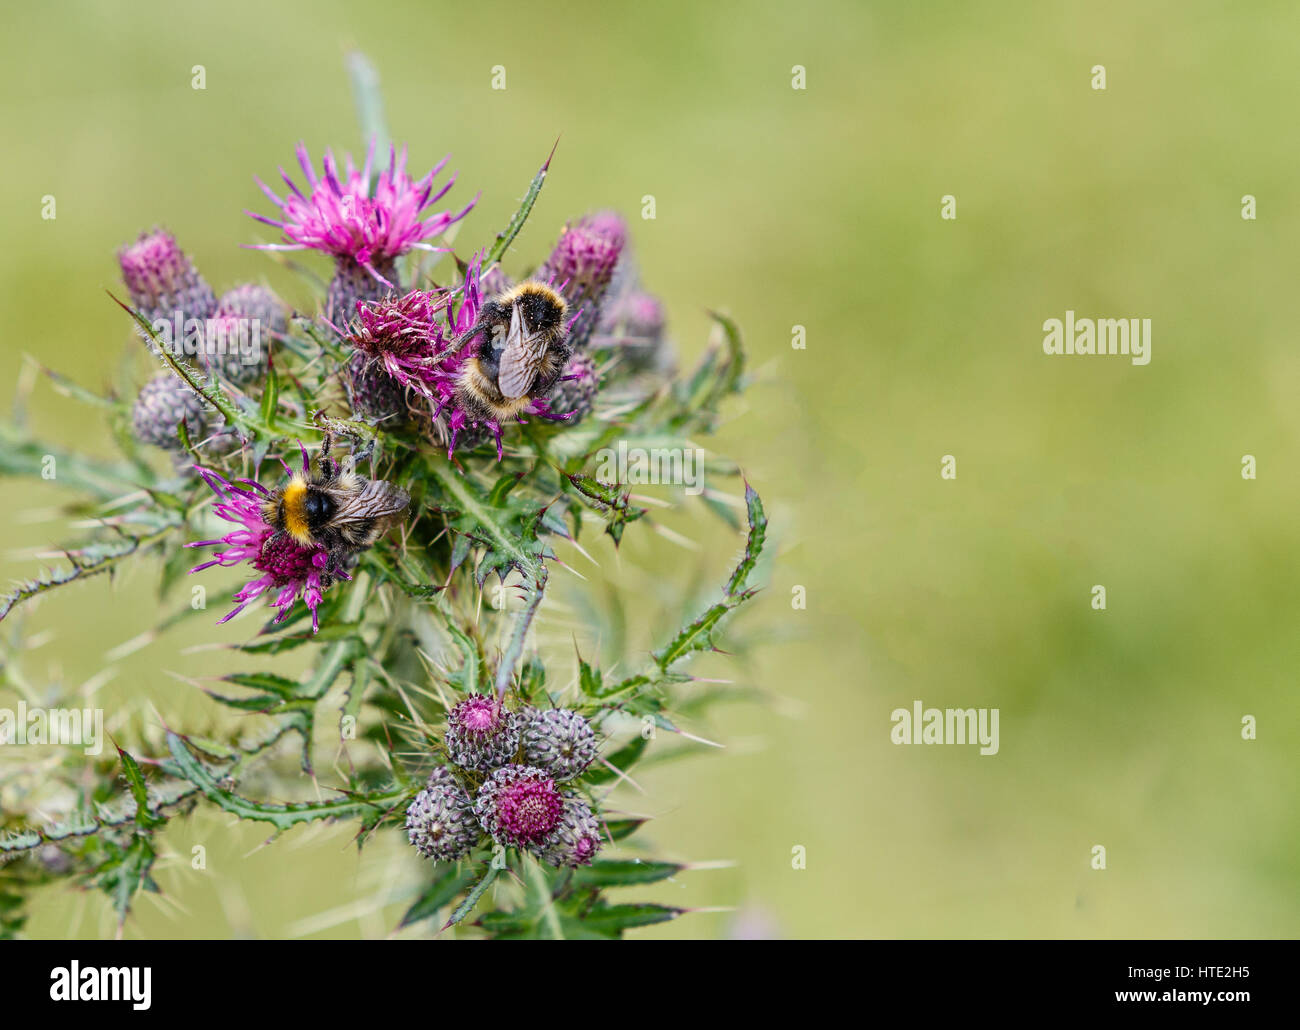 Bee feeding on a purple thistle against a green bokeh background. Selective focus with copyspace. - Stock Image